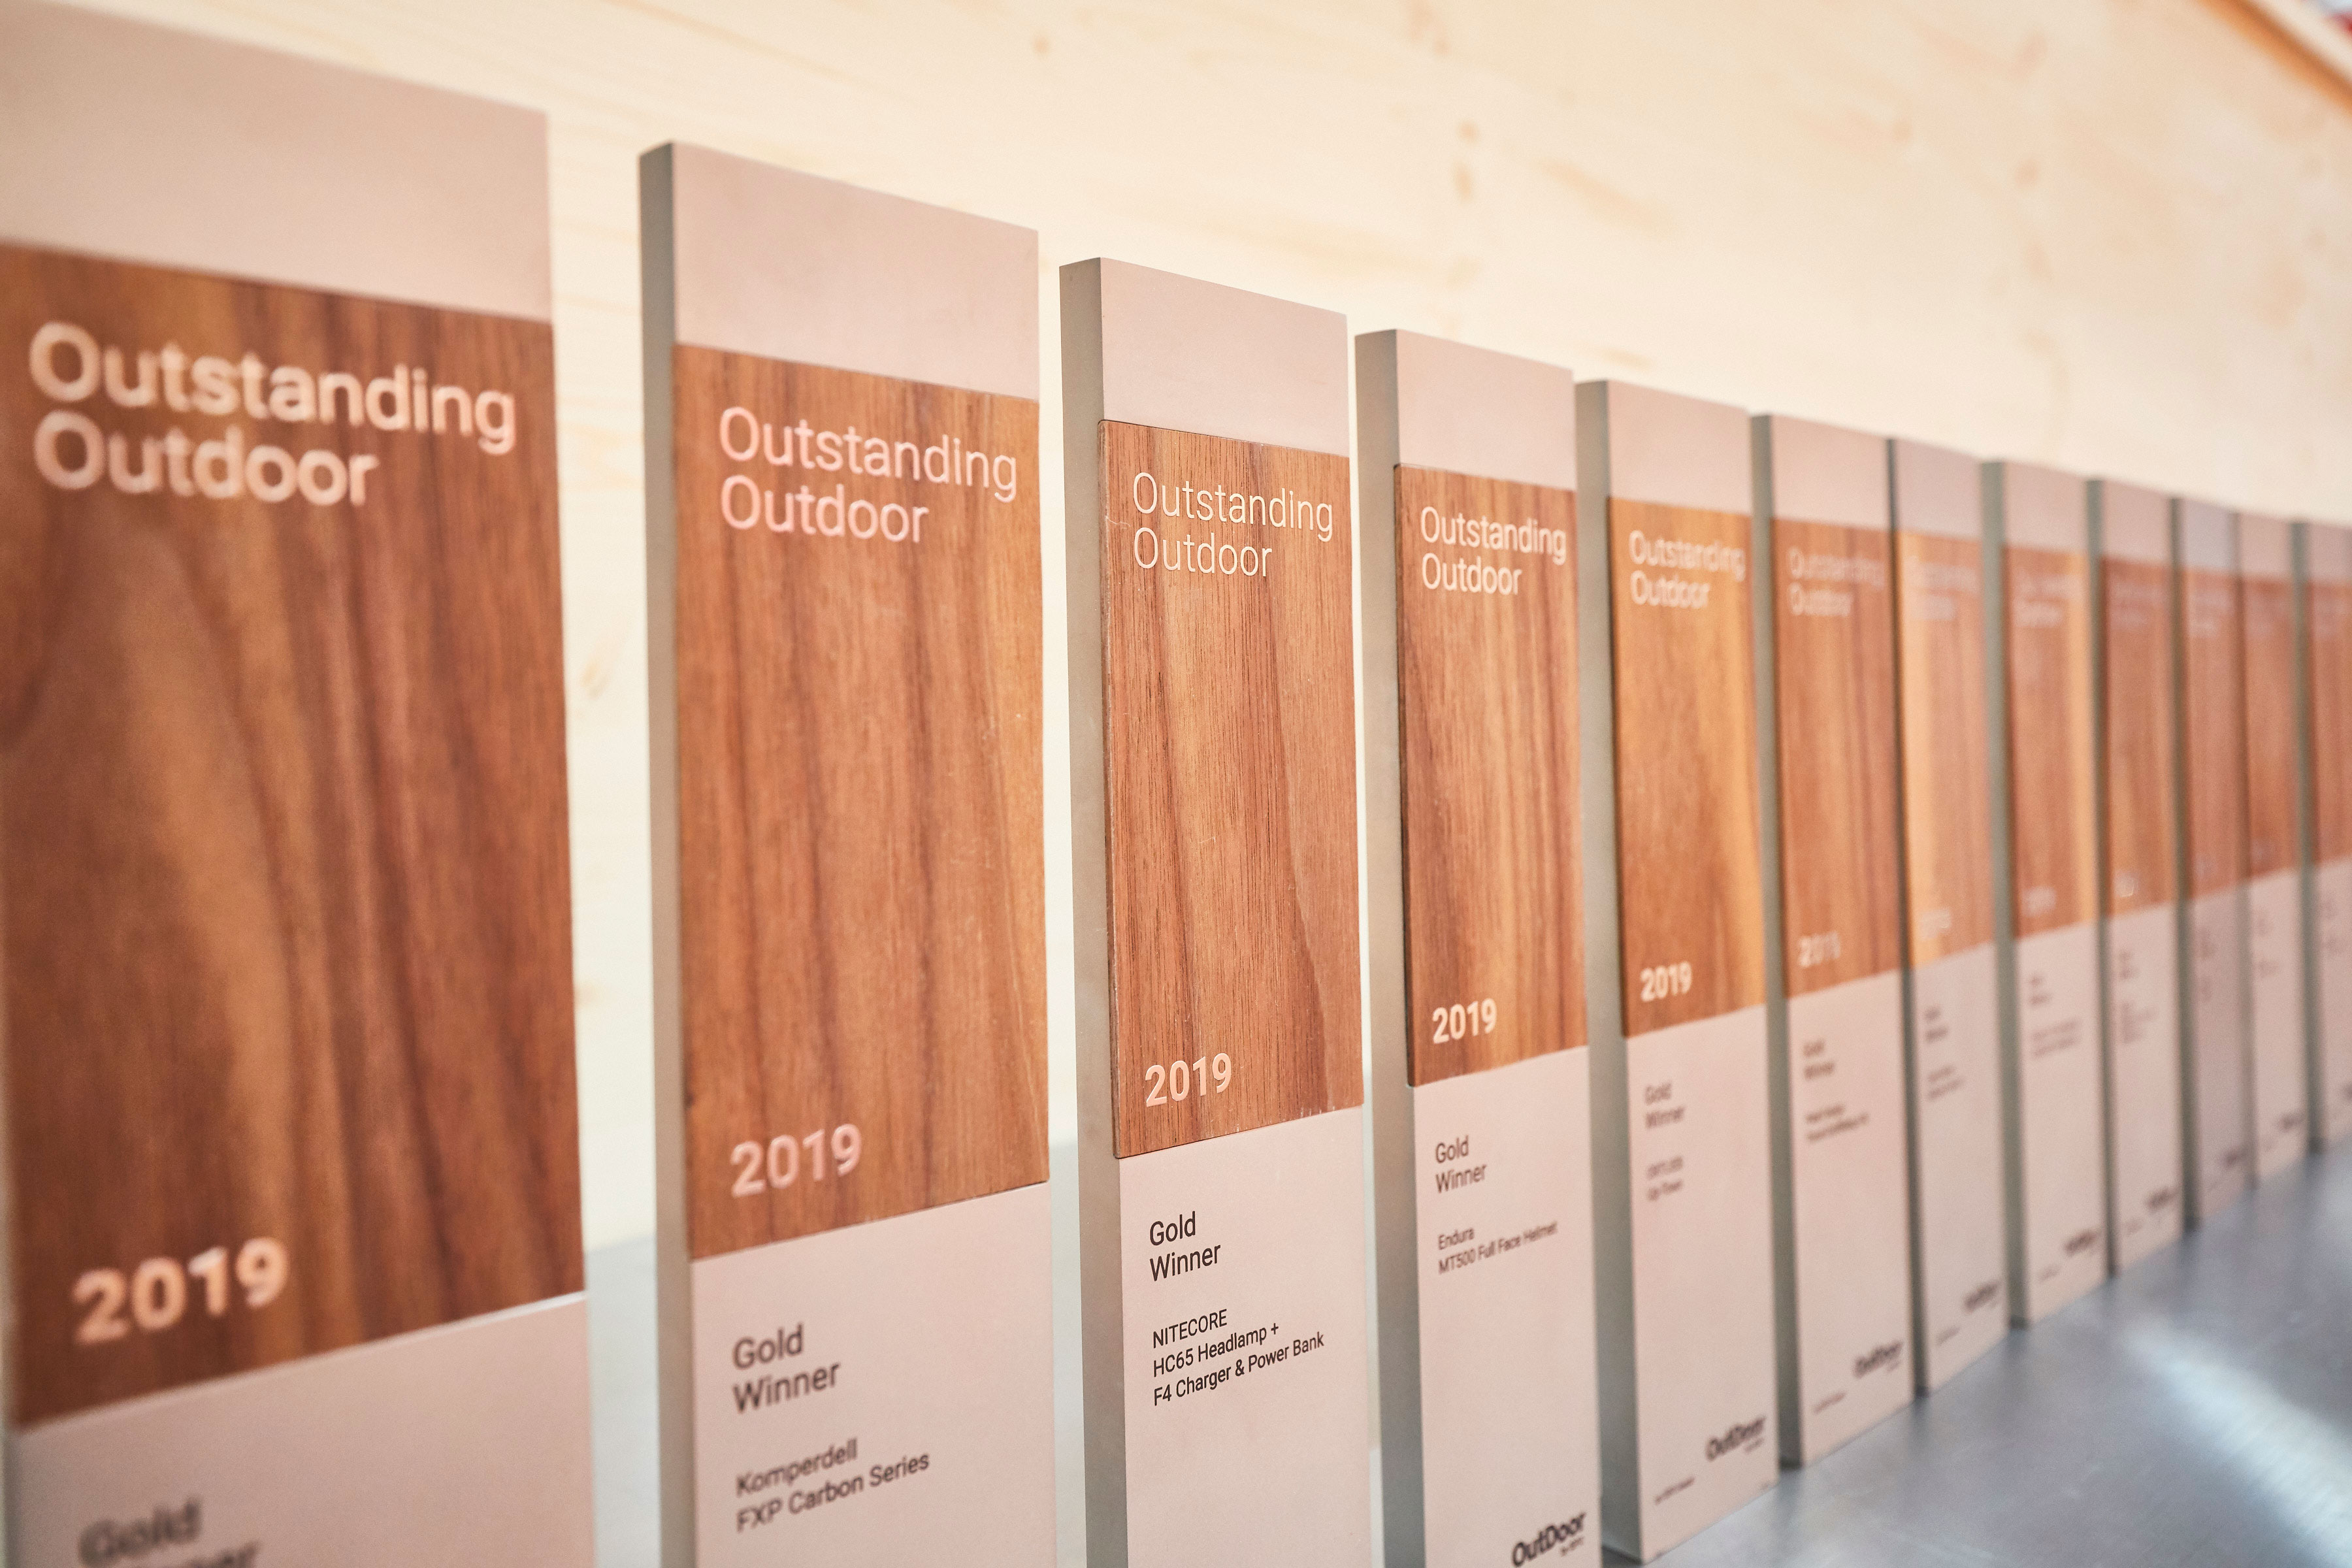 OutDoor by ISPO Outstanding Outdoor Award